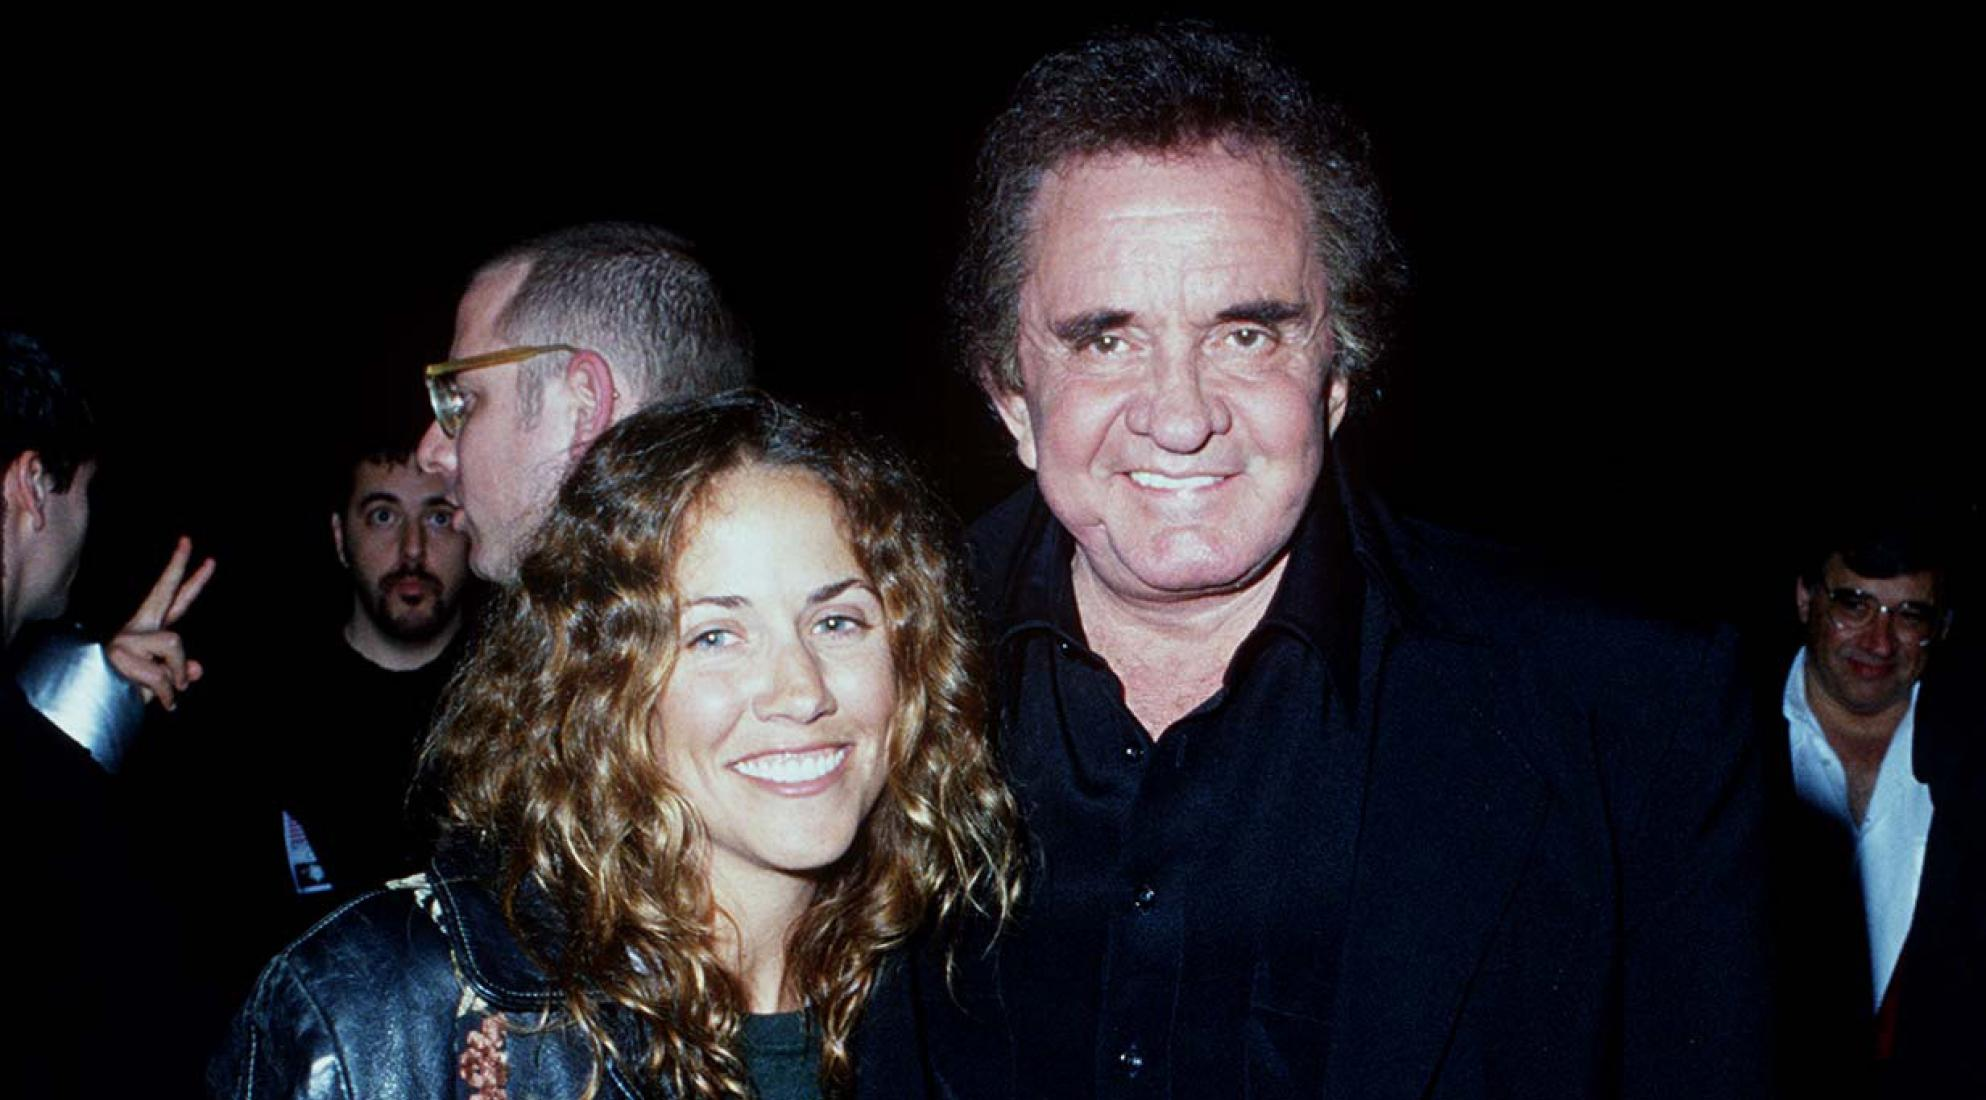 Sheryl Crow & Johnny Cash in 1995